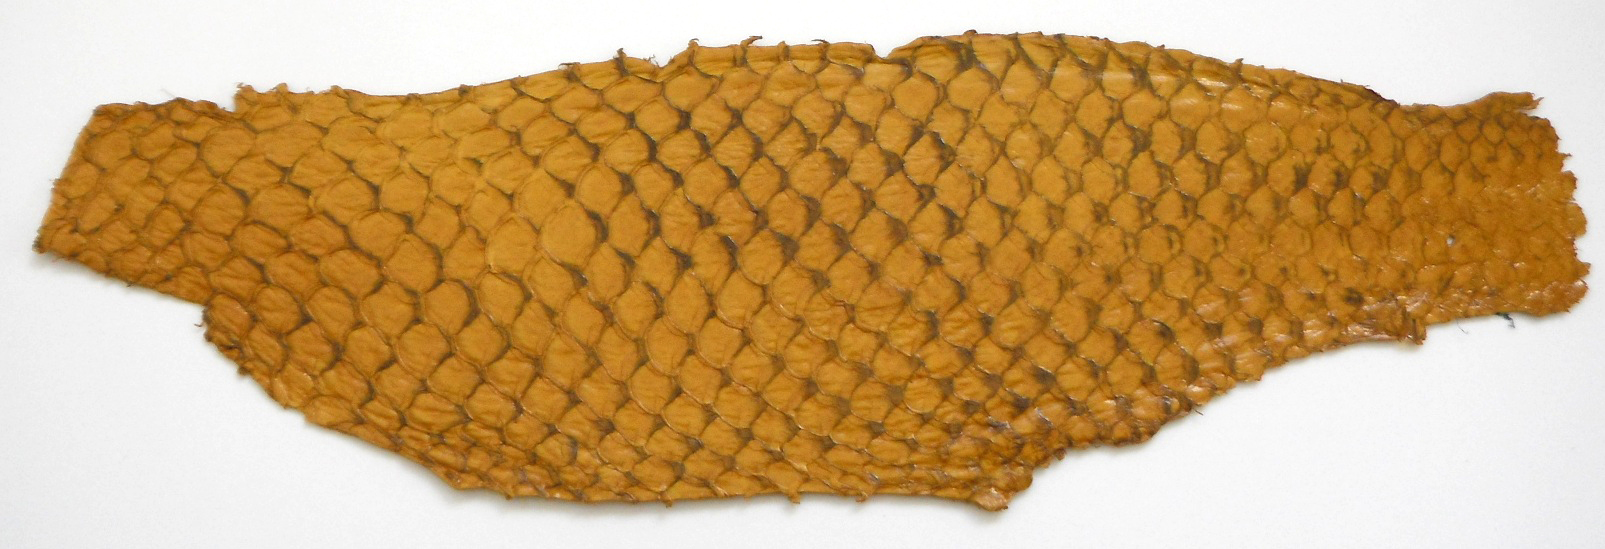 Eco friendly handmade soft suede Yellow Tilapia Fish Skin Leathe